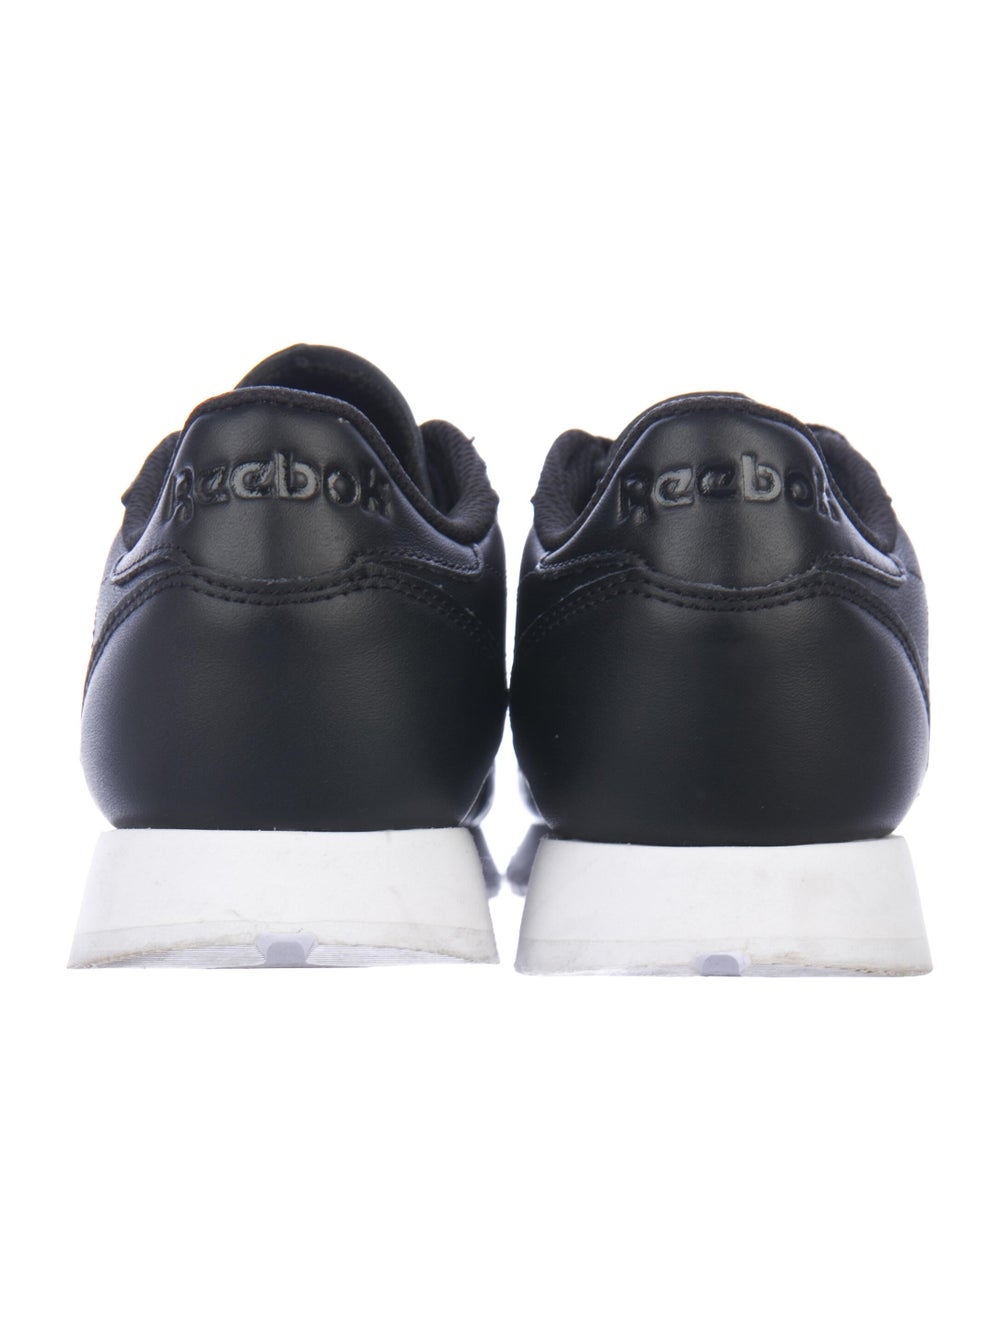 Reebok by Victoria Beckham Leather Low-Top Sneake… - image 4